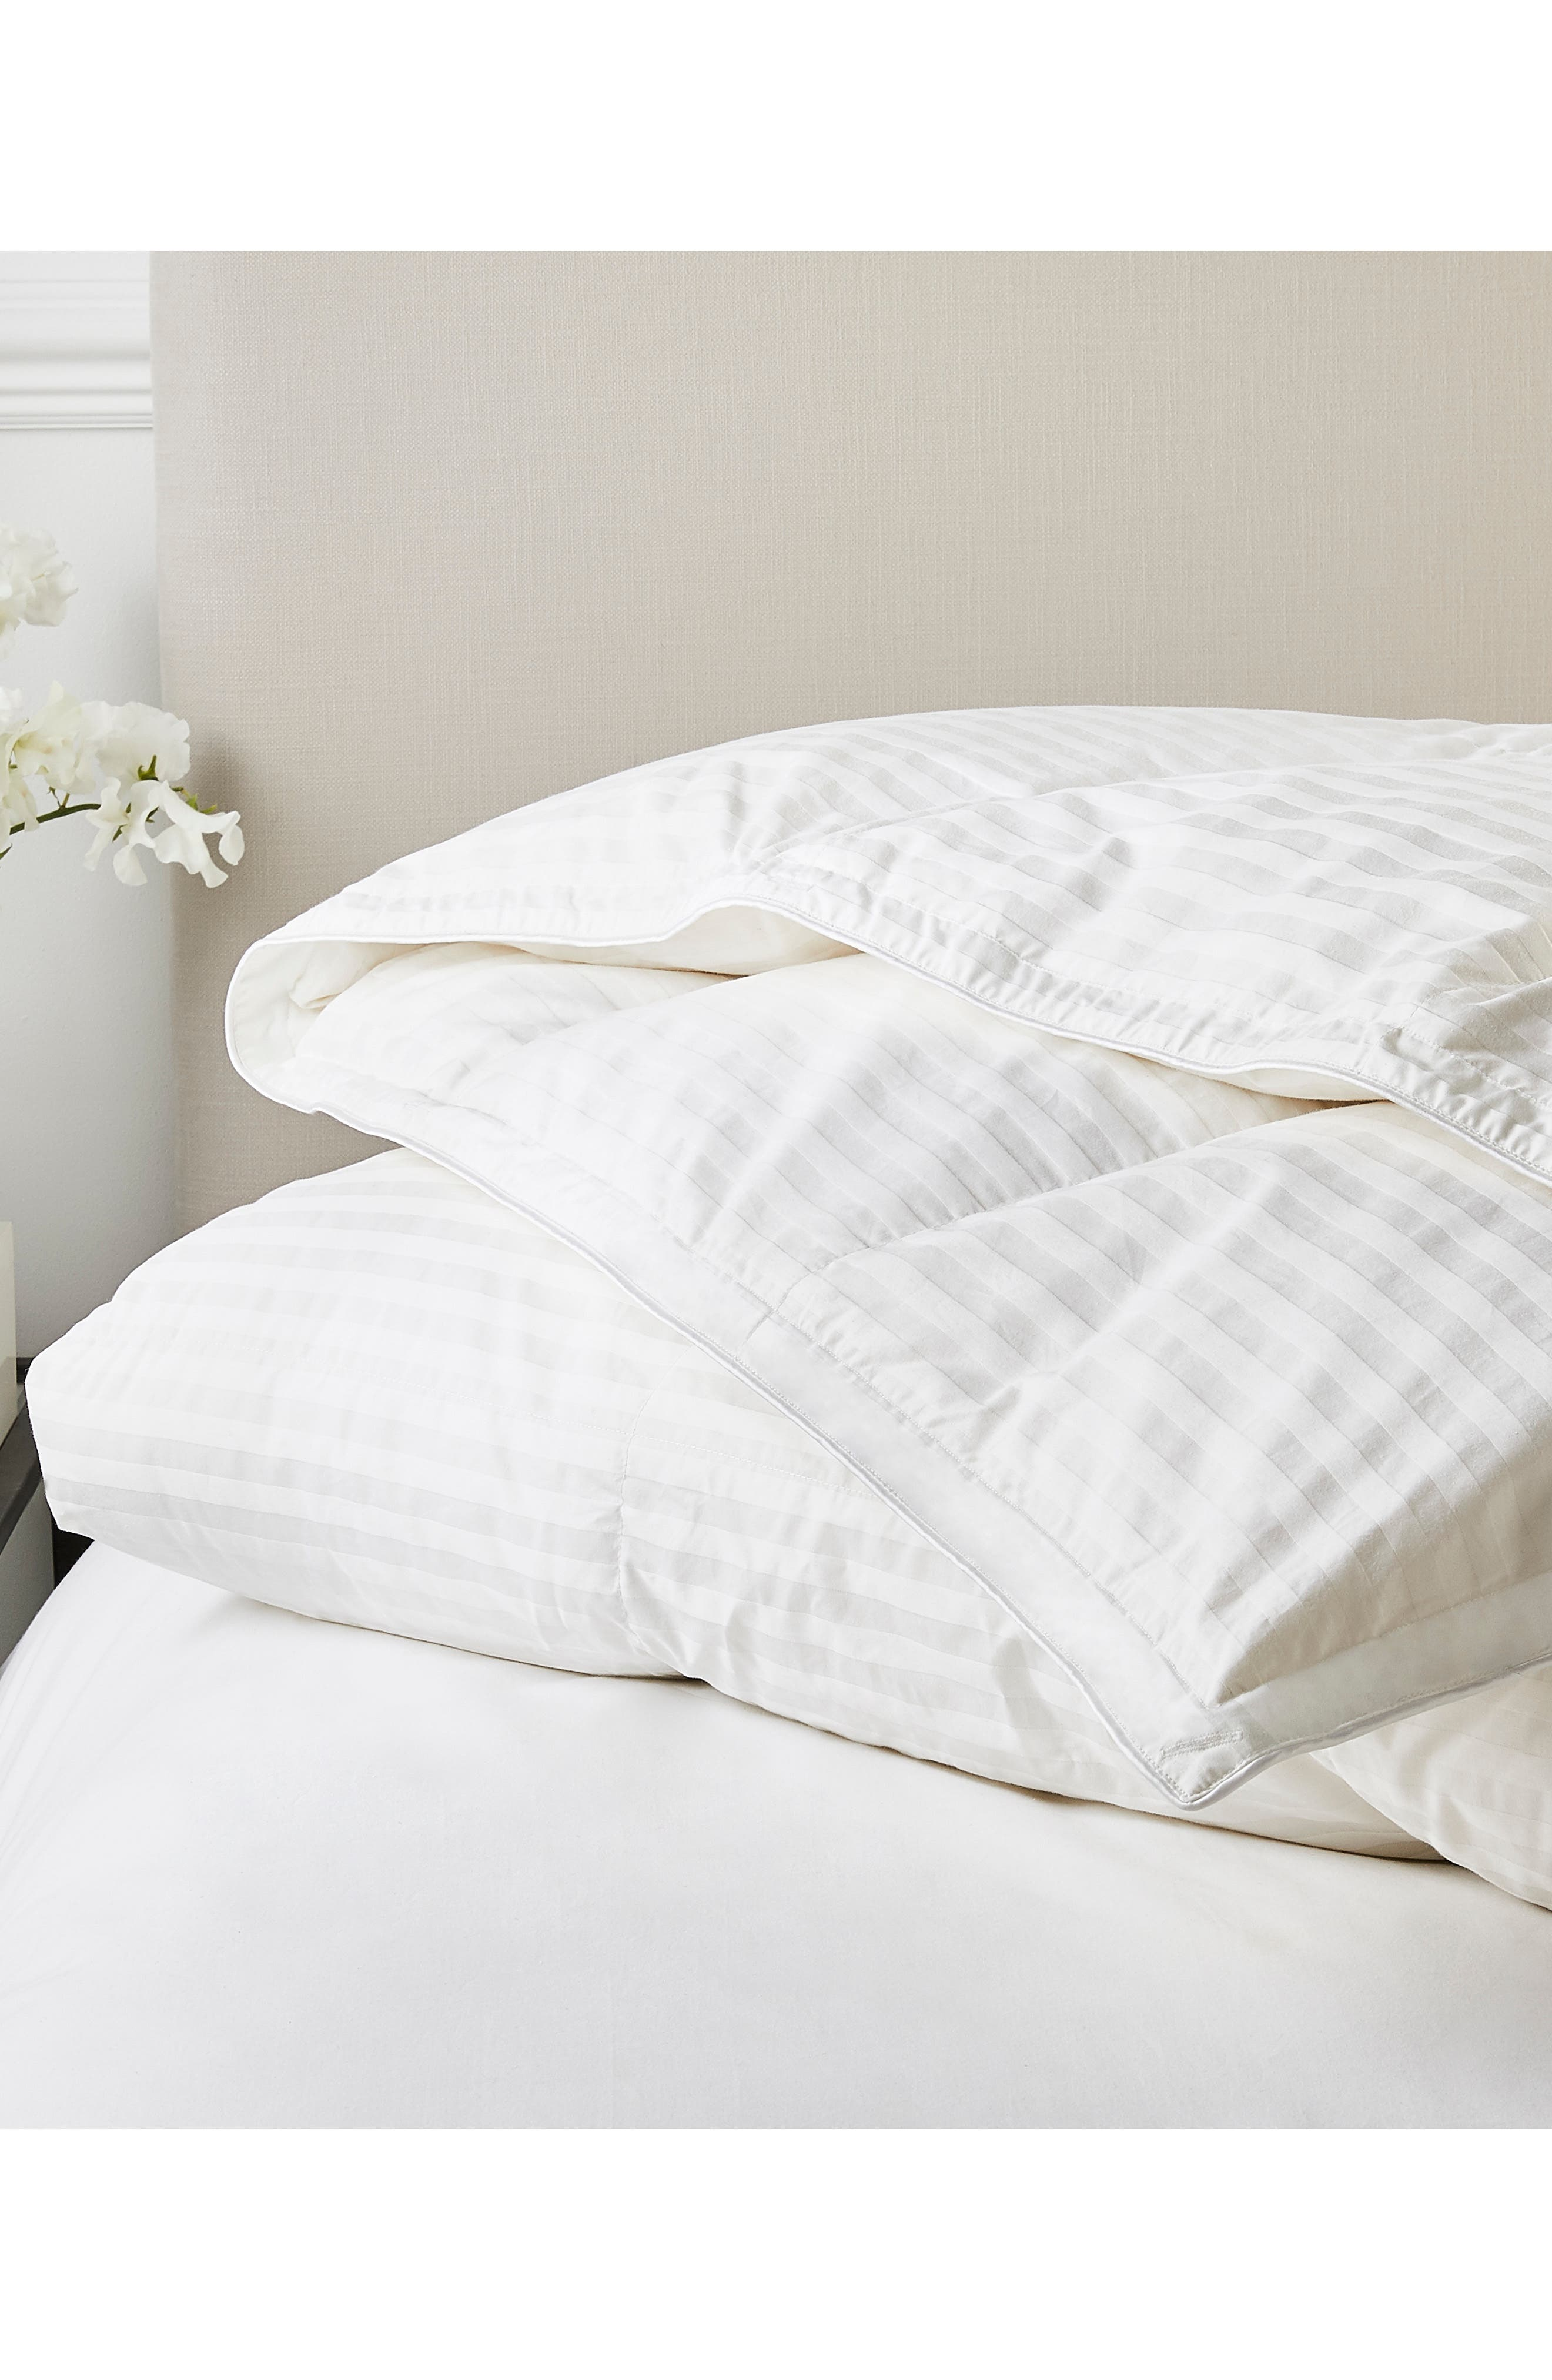 THE WHITE COMPANY, Light Warmth Hungarian Goose Down Comforter, Main thumbnail 1, color, IVORY